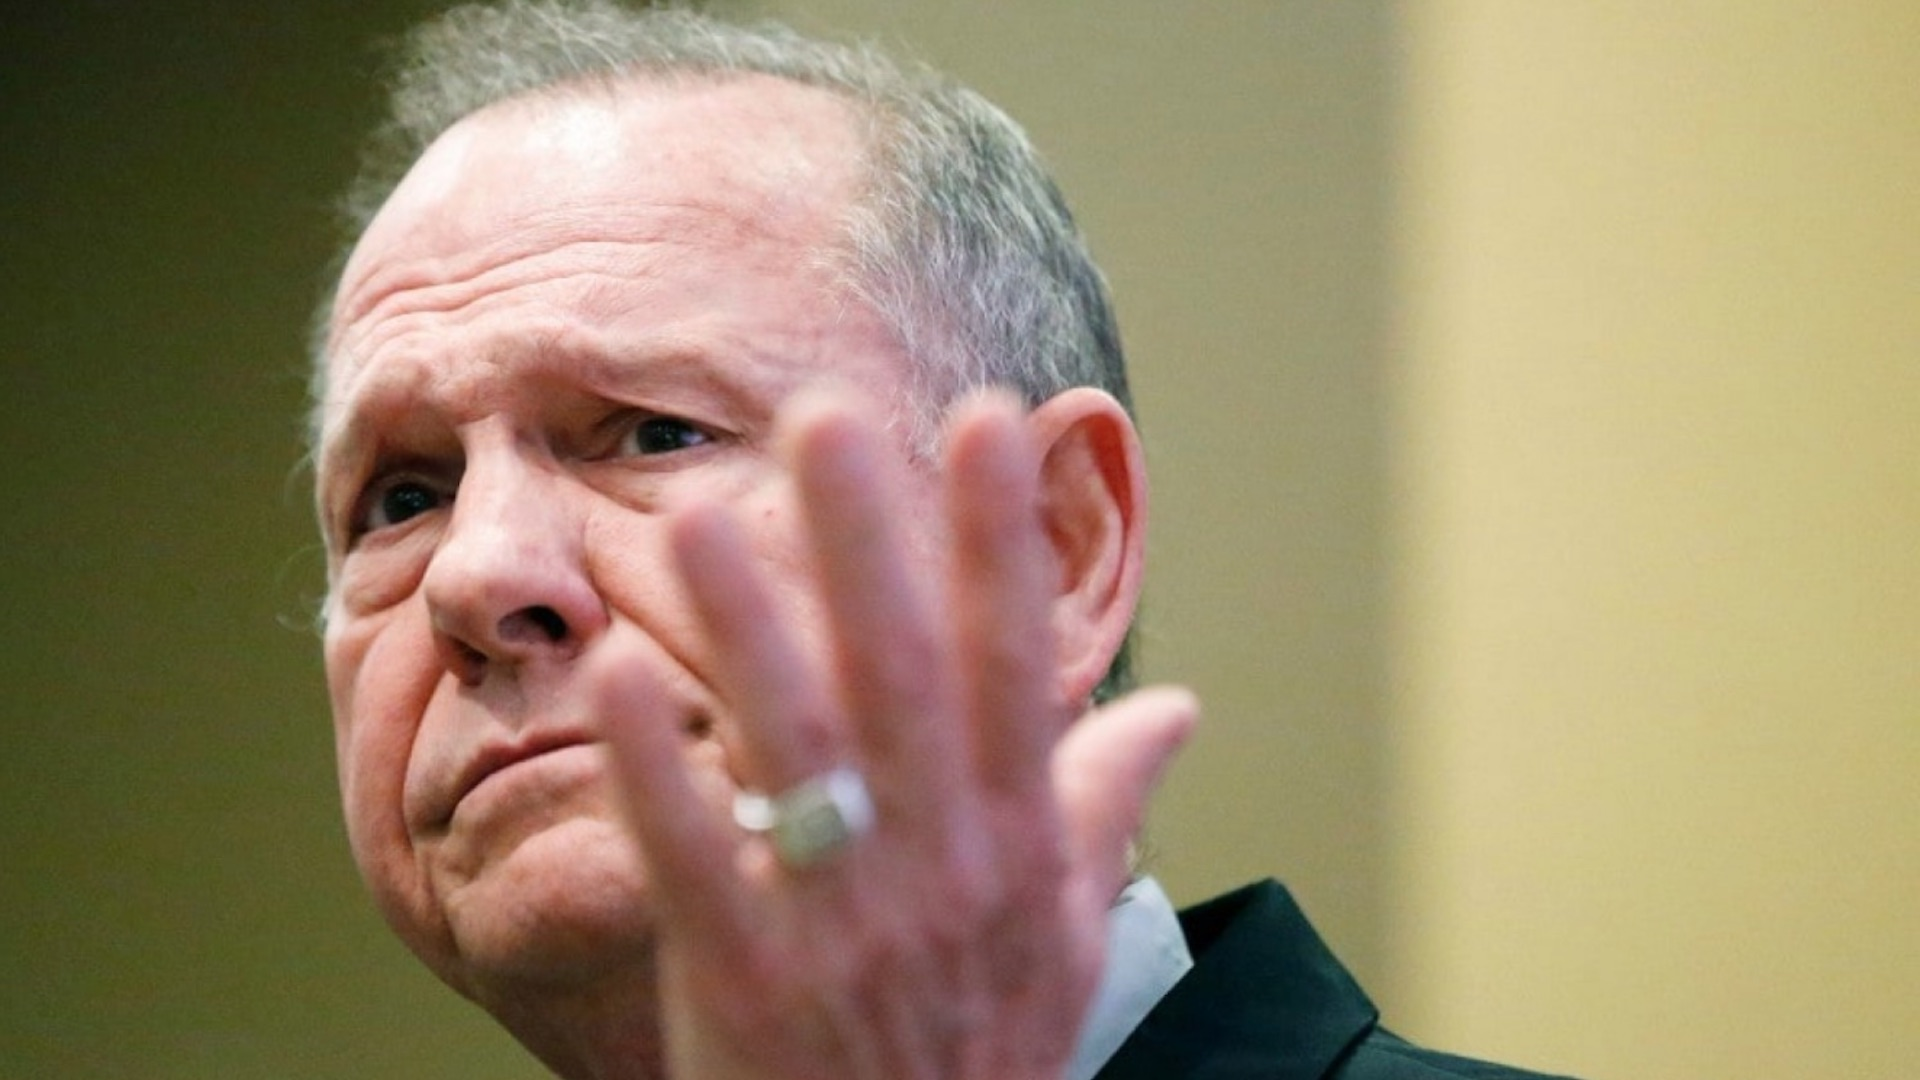 Woman says Roy Moore initiated sexual encounter when she was 14, he was 32